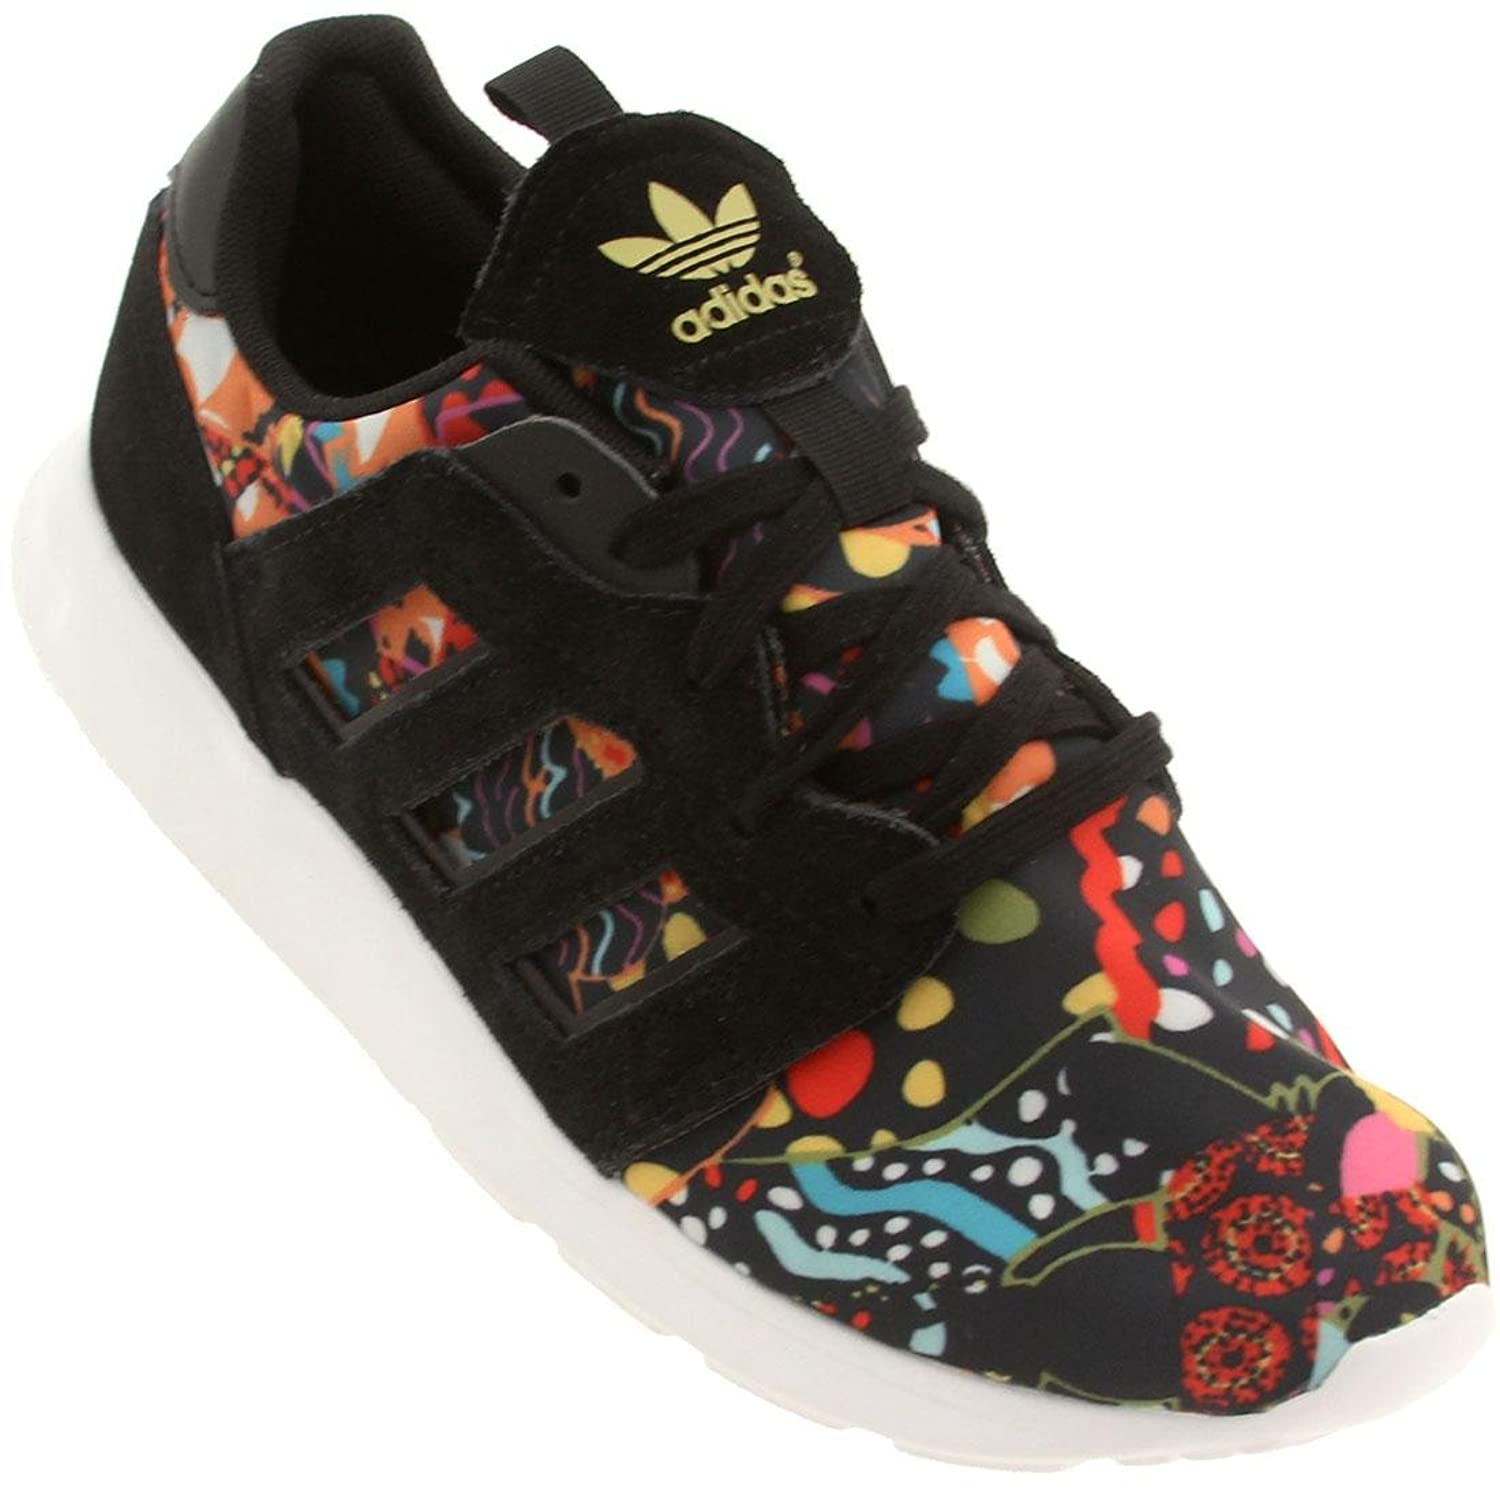 Amazon.com | Adidas Originals ZX 500 2.0 Retro Running Sneaker Shoe -  Black/Black/Gold - Womens - 7 | Running